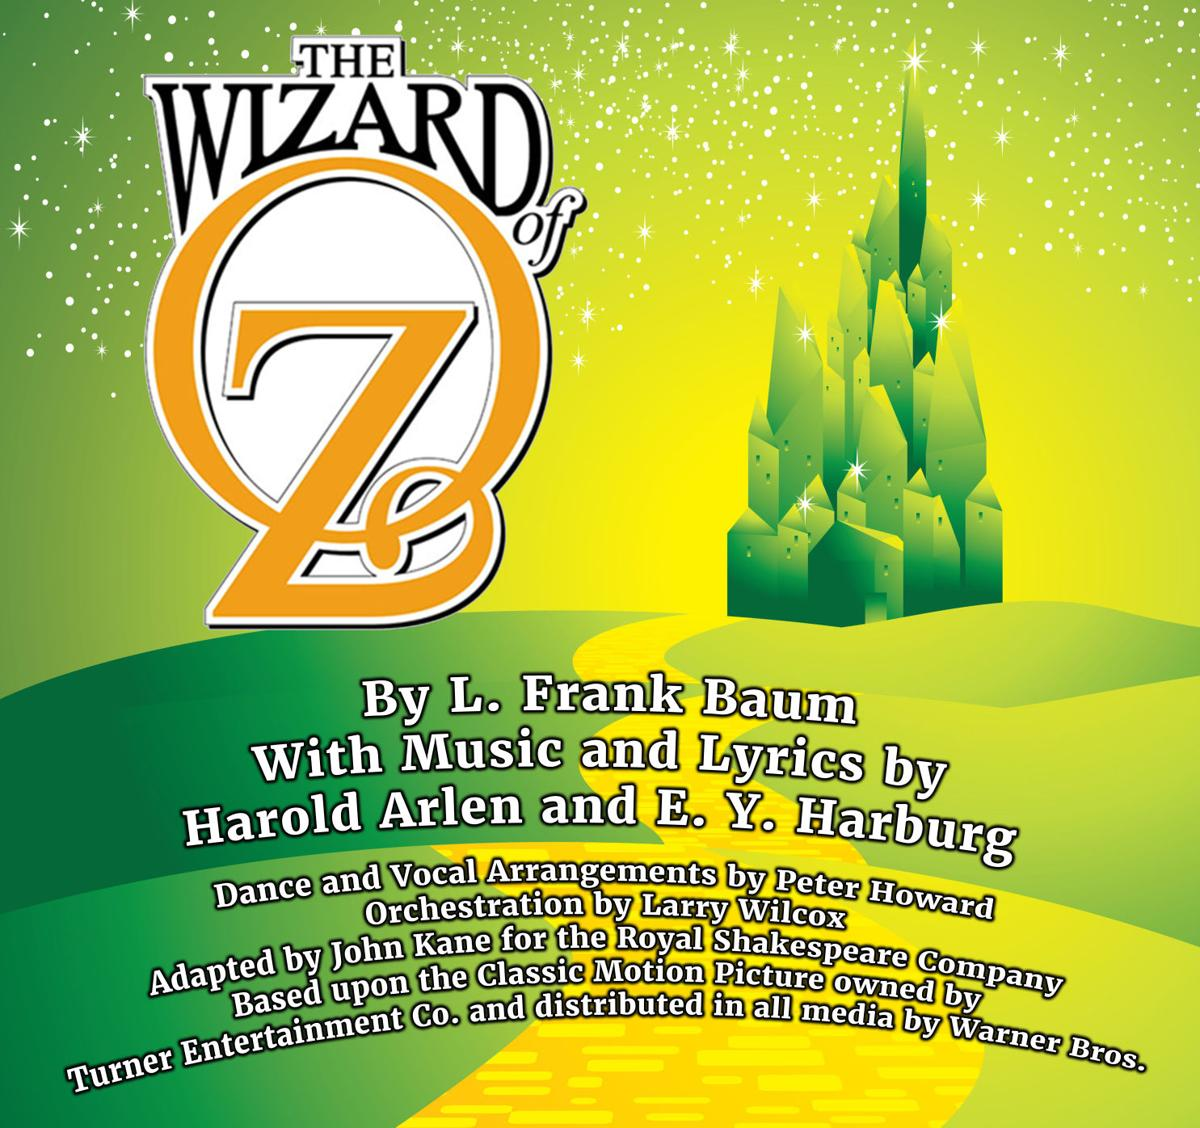 Paris Community Theatre hosting auditions for 'Wizard of Oz' | Free